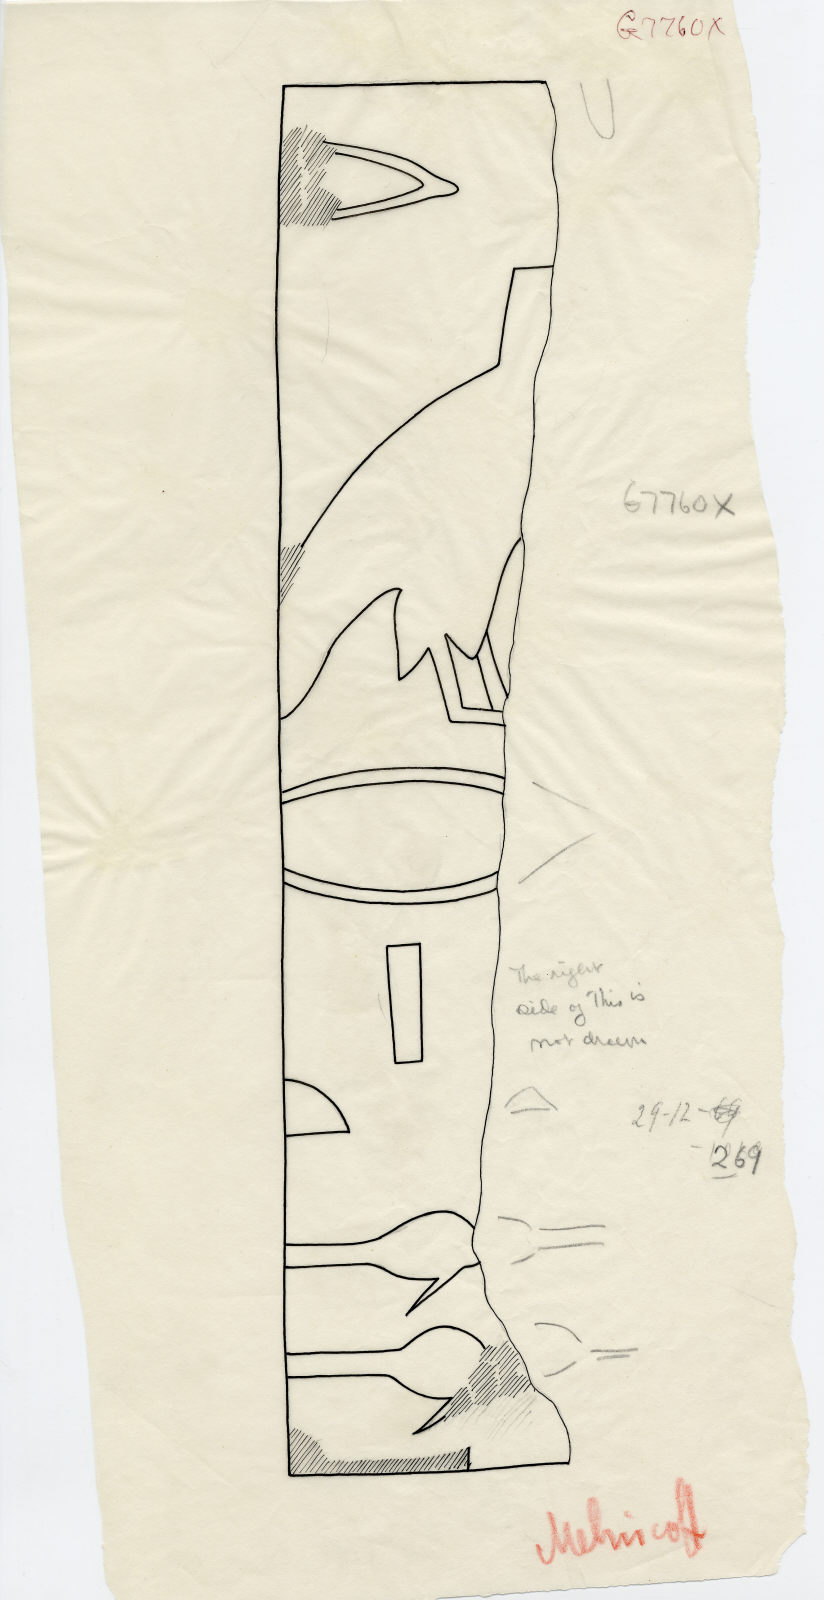 Drawings: G 7760: fragments of relief